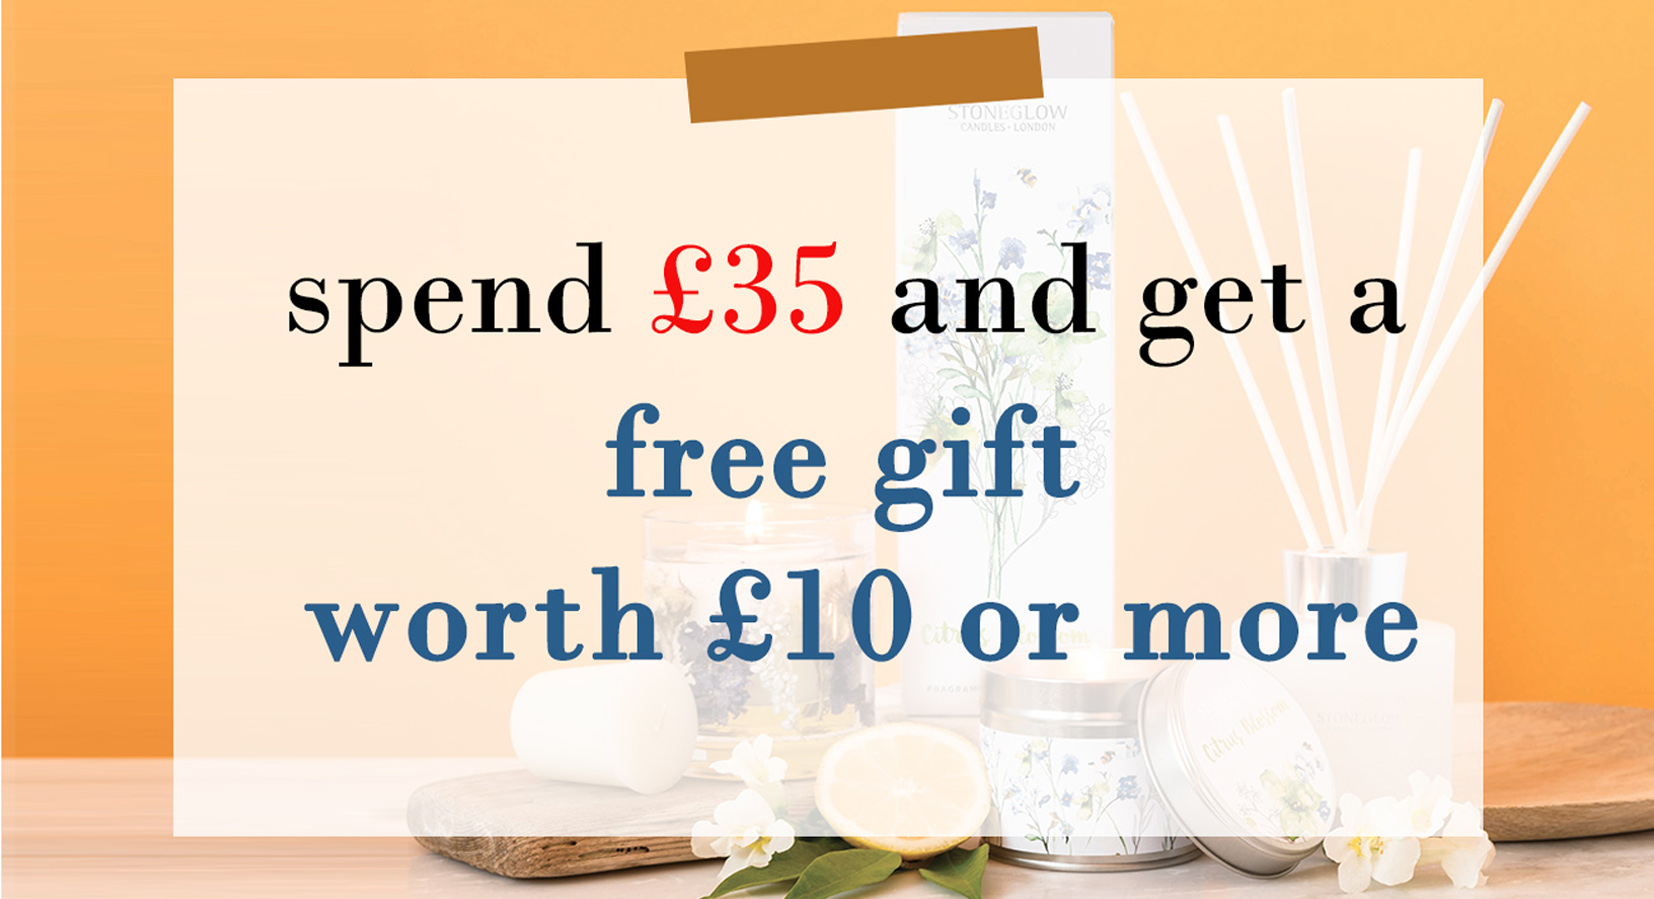 Spend £35 and get a free gift worth £10 or more.